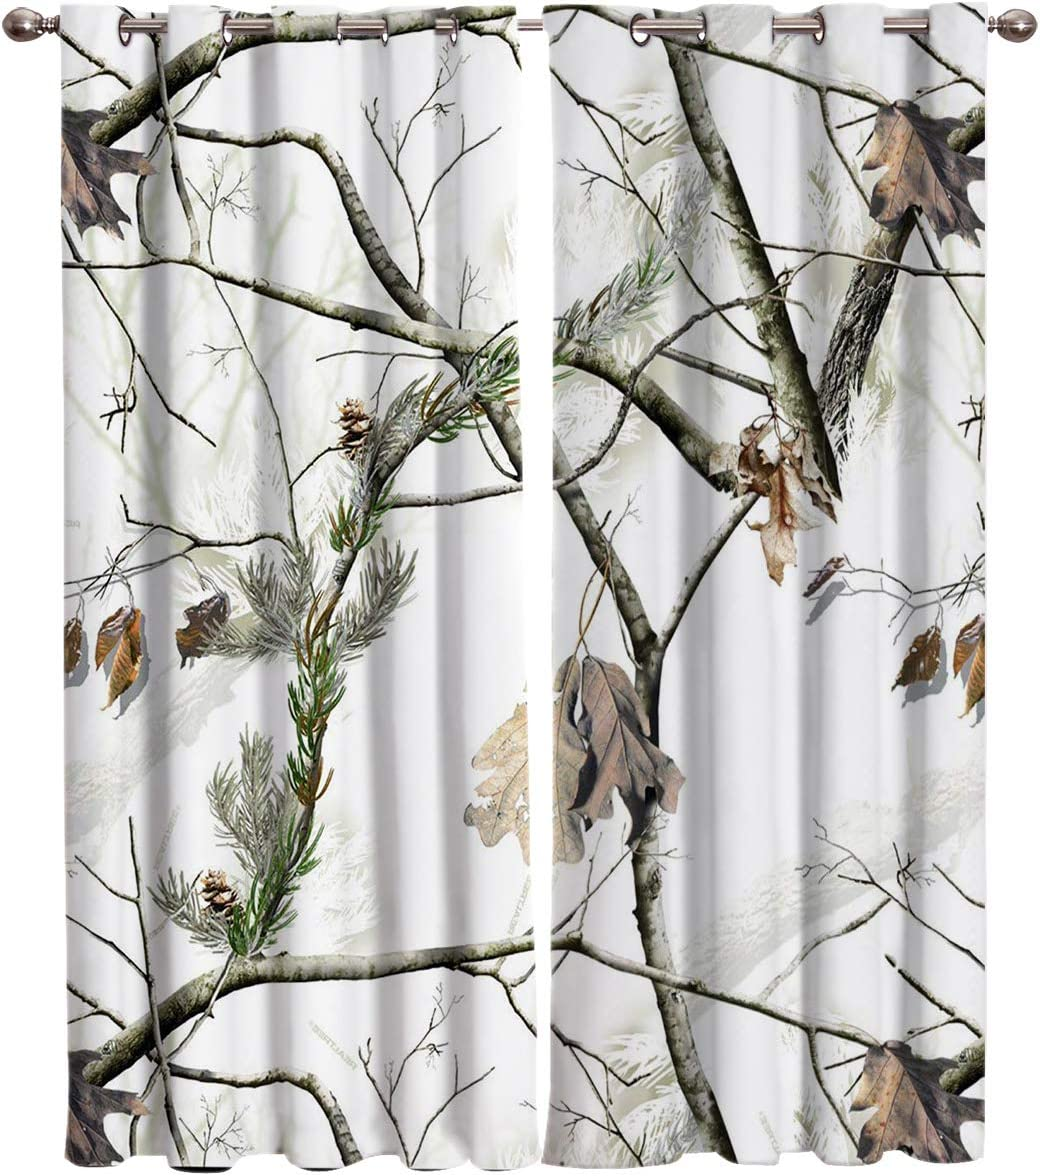 Blackout Curtains Thermal Insulated White 新作 大人気 D Camouflage 結婚祝い Camo Room